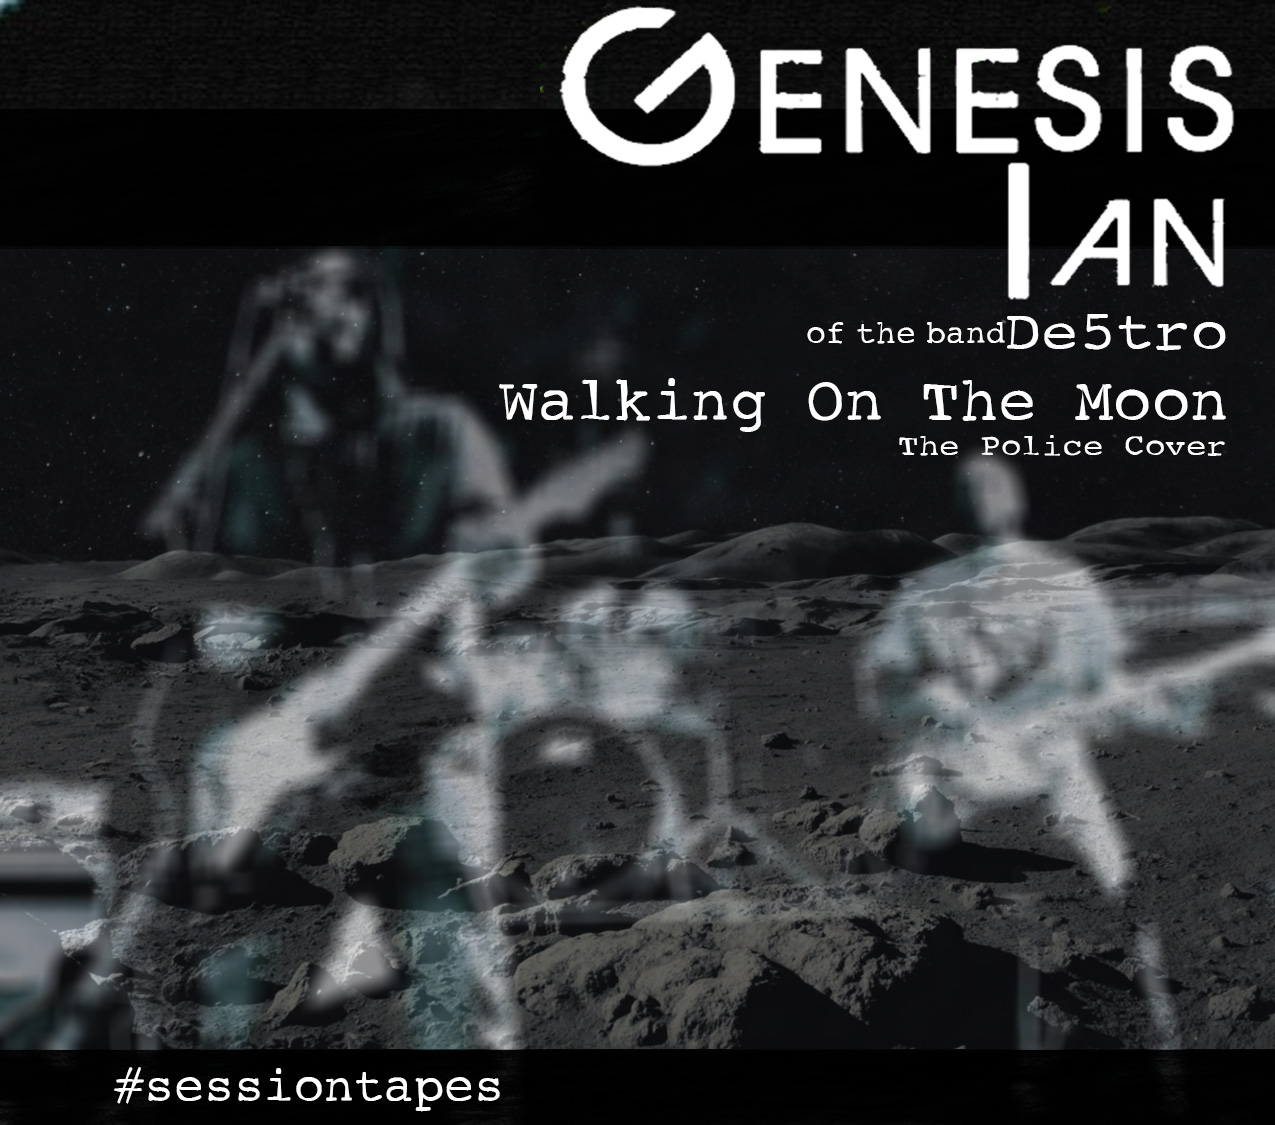 Genesis Ian – Walking On The Moon (The Police Cover)